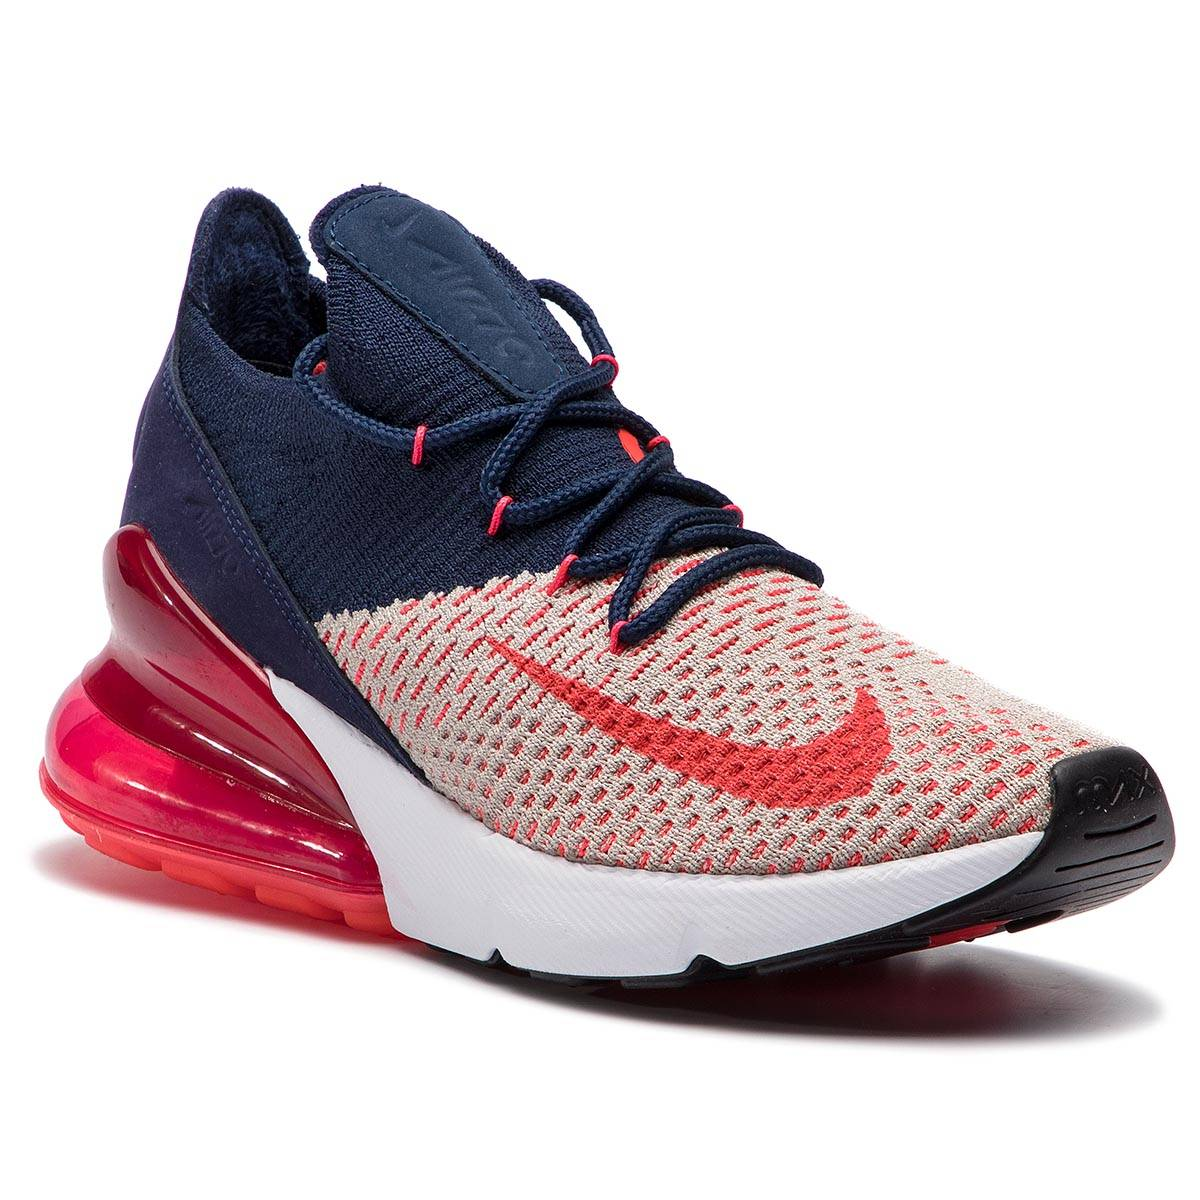 on sale f0760 a9fa1 NIKE Skor NIKE - Air Max 270 Flyknit AH6803 200 Moon Particle Red Orbit